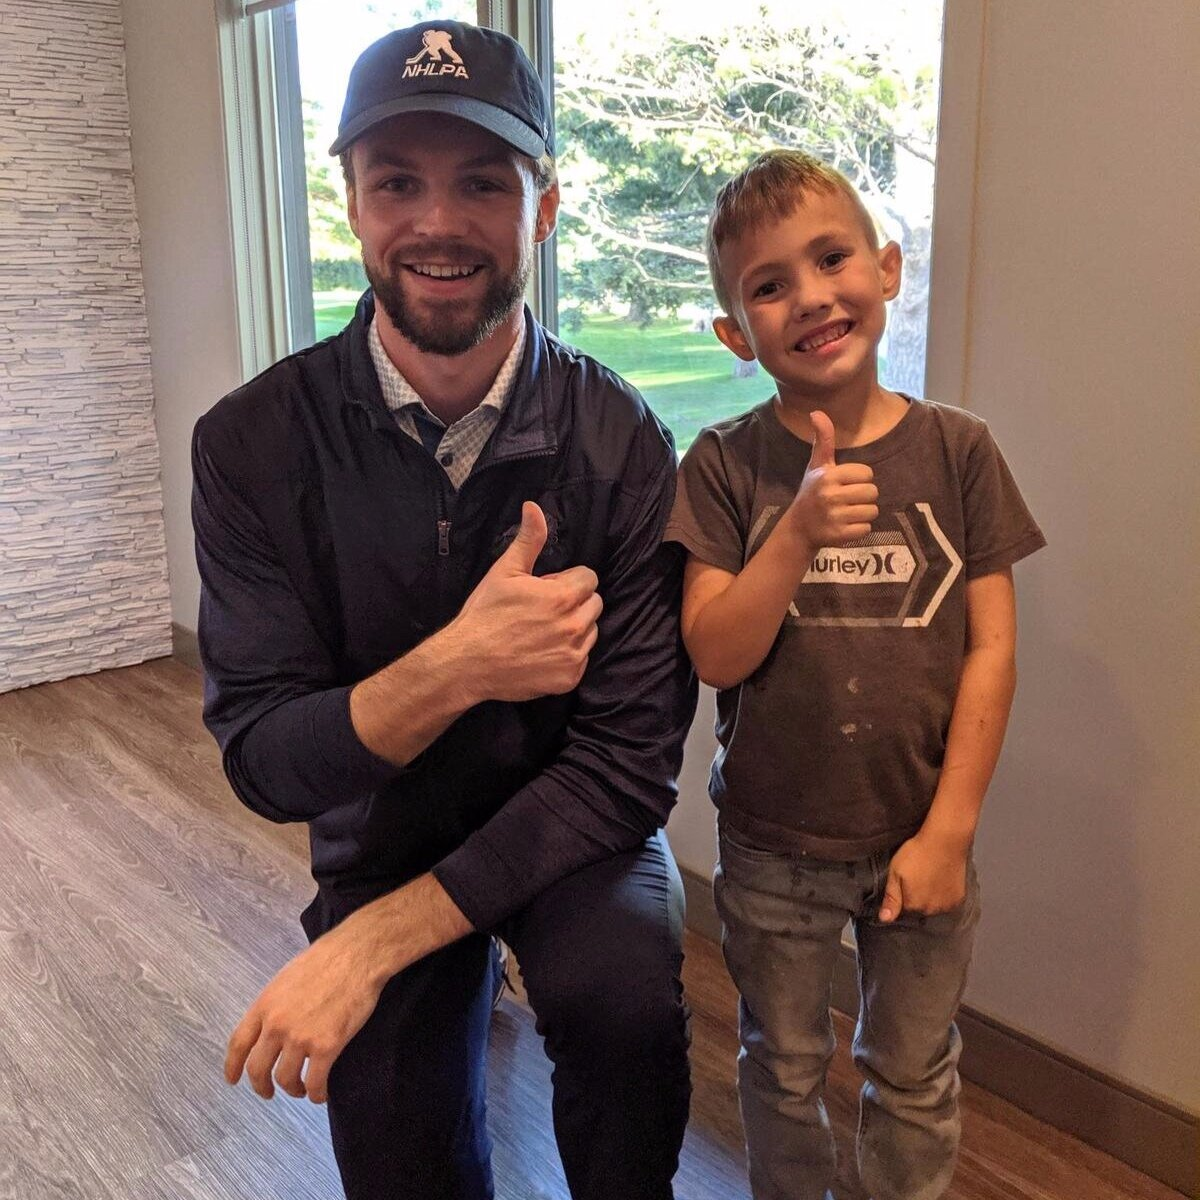 Pictured:  Dream Factory Ambassador Josh Morrissey with Dream Kid Jaxx at the Exchange Income Corporation Golf Fundraiser - over $130,000 raised to make dreams come true!